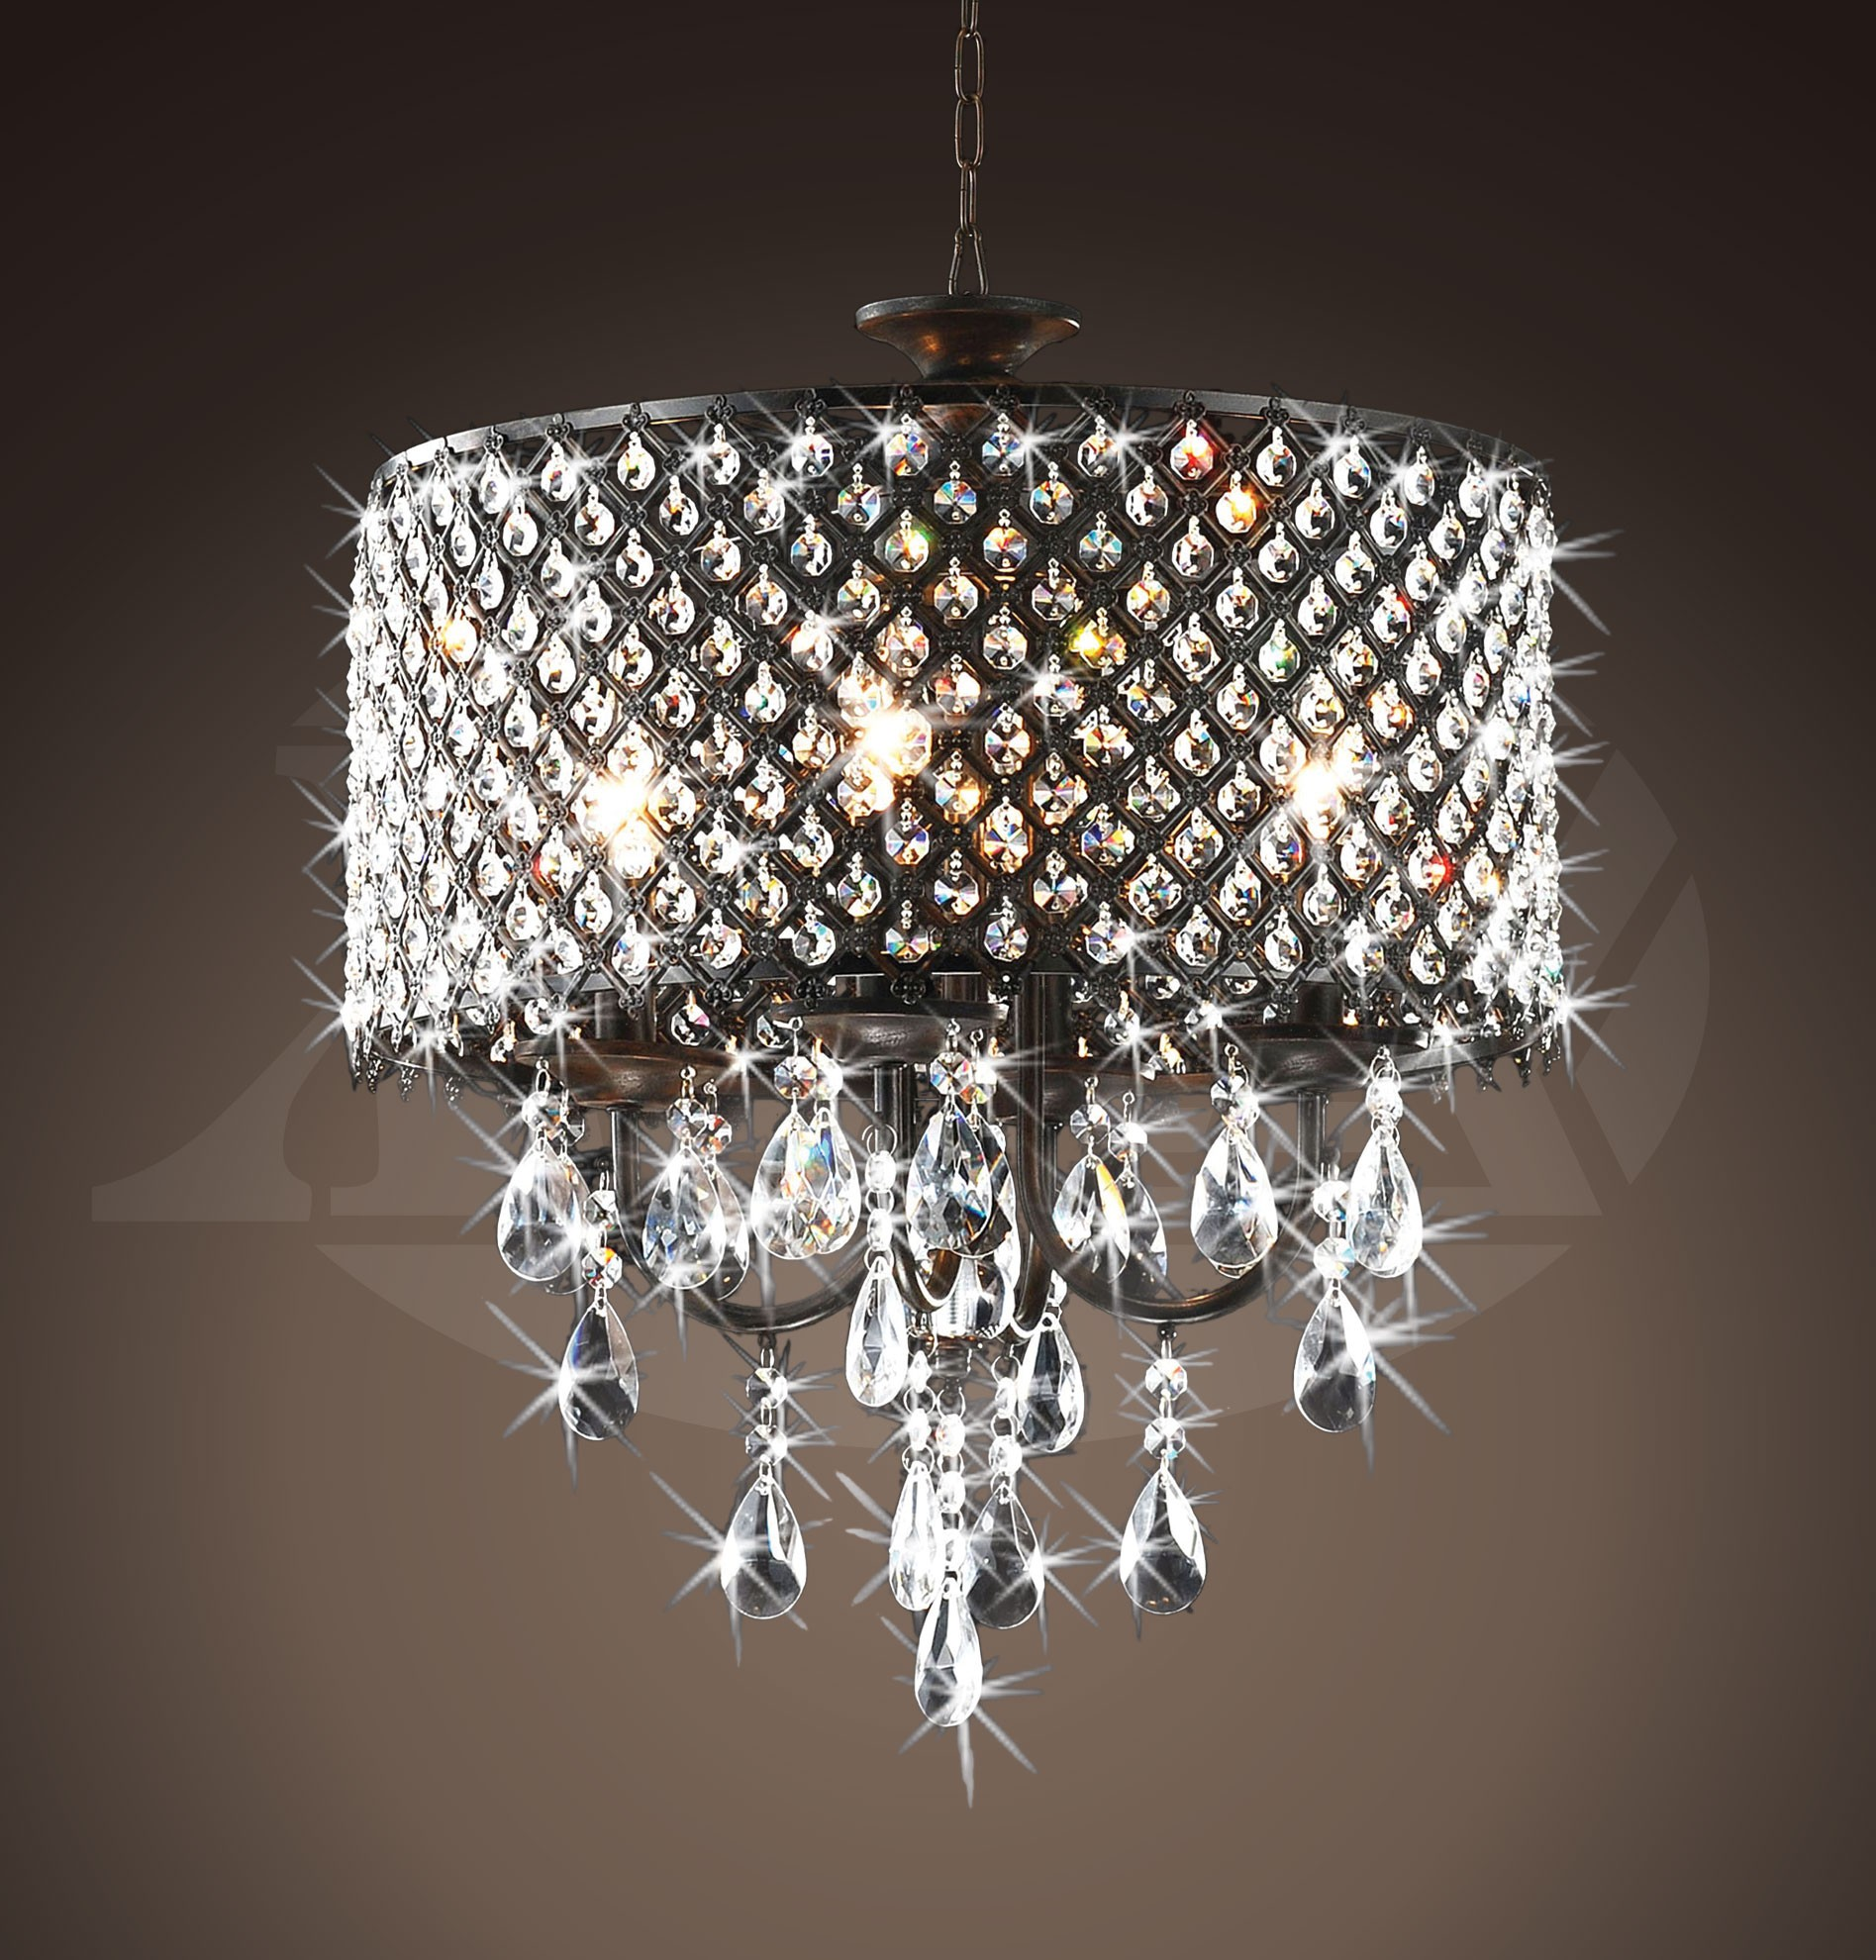 Rachelle 4 light Round Antique Bronze Brass Crystal Chandelier